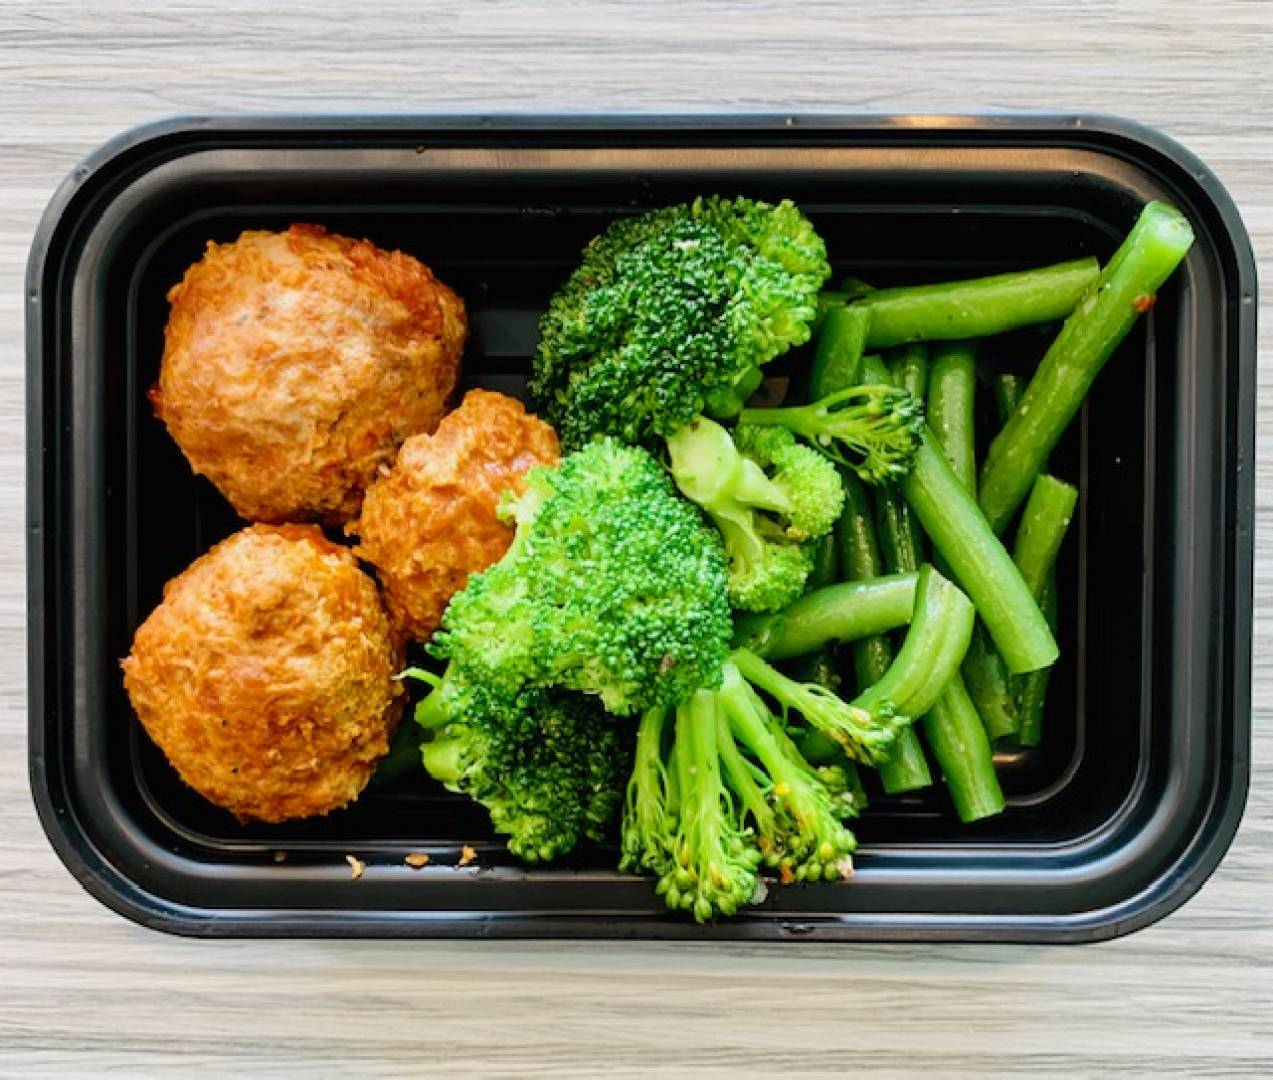 Beef Meatballs, Broccoli and Green Beans